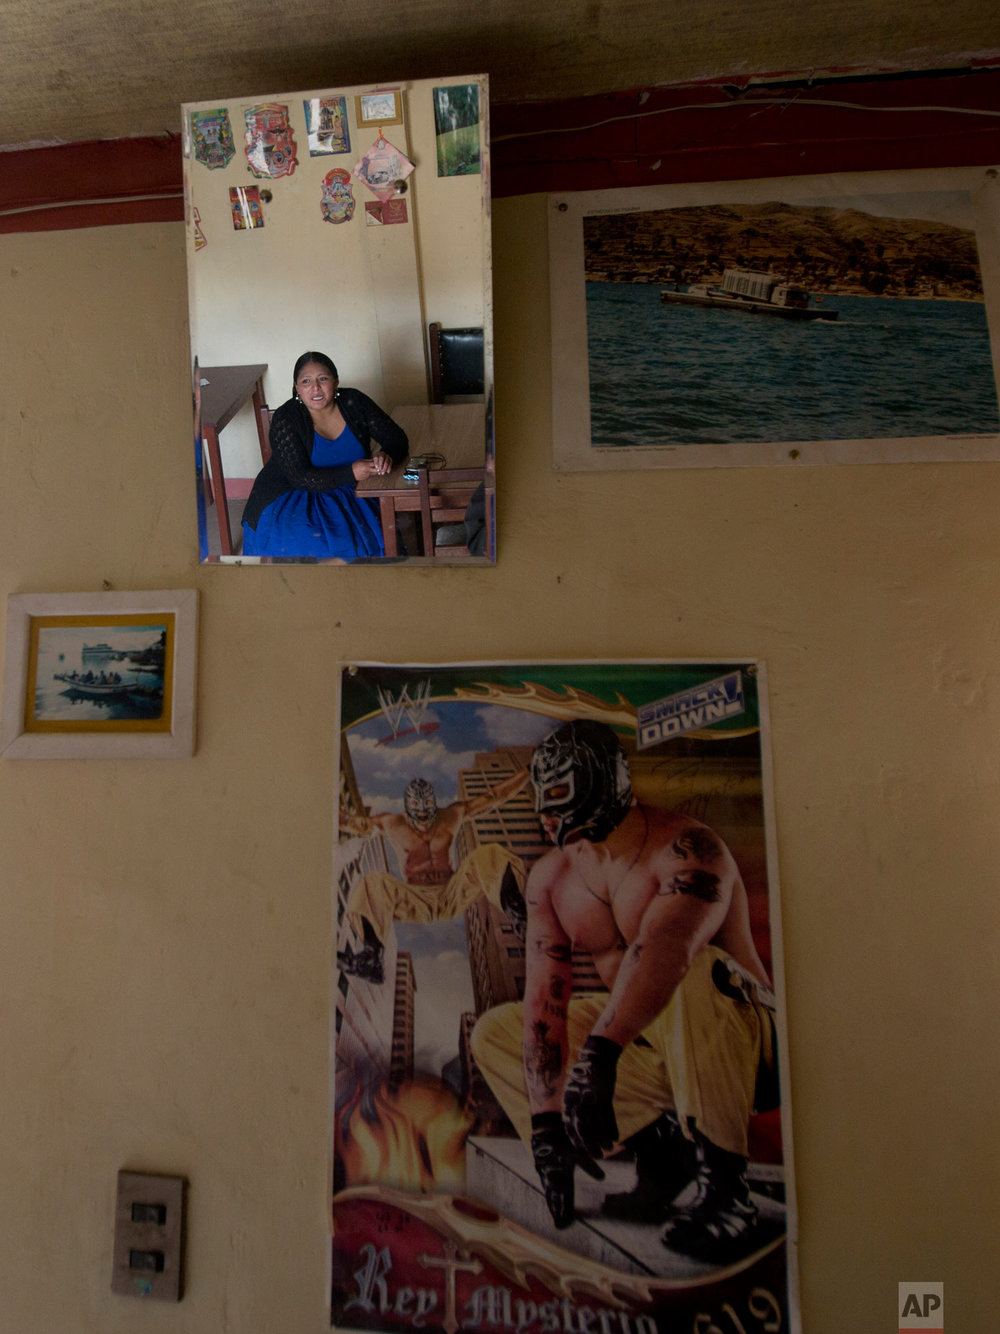 Reyna Torrez is reflected in a mirror next to a poster of Mexican professional wrestler Rey Mysterio during an interview at her home in El Alto, Bolivia, Monday, Feb. 18, 2019. (AP Photo/Juan Karita)